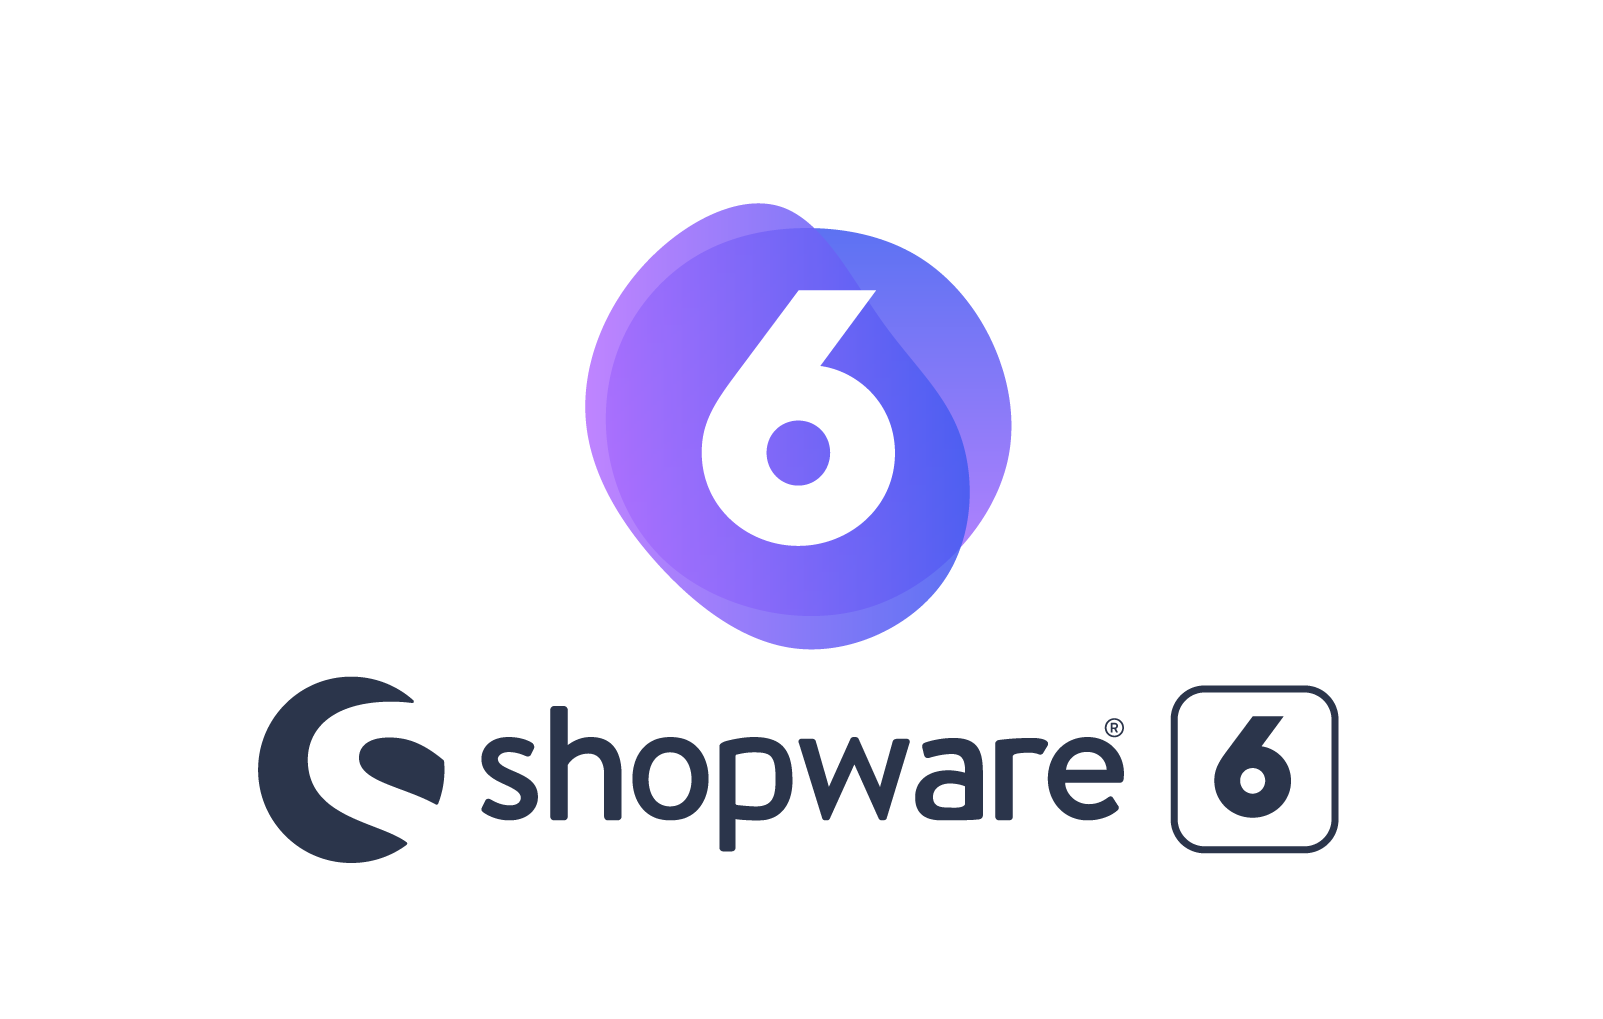 Shopware 6 Shop Logo